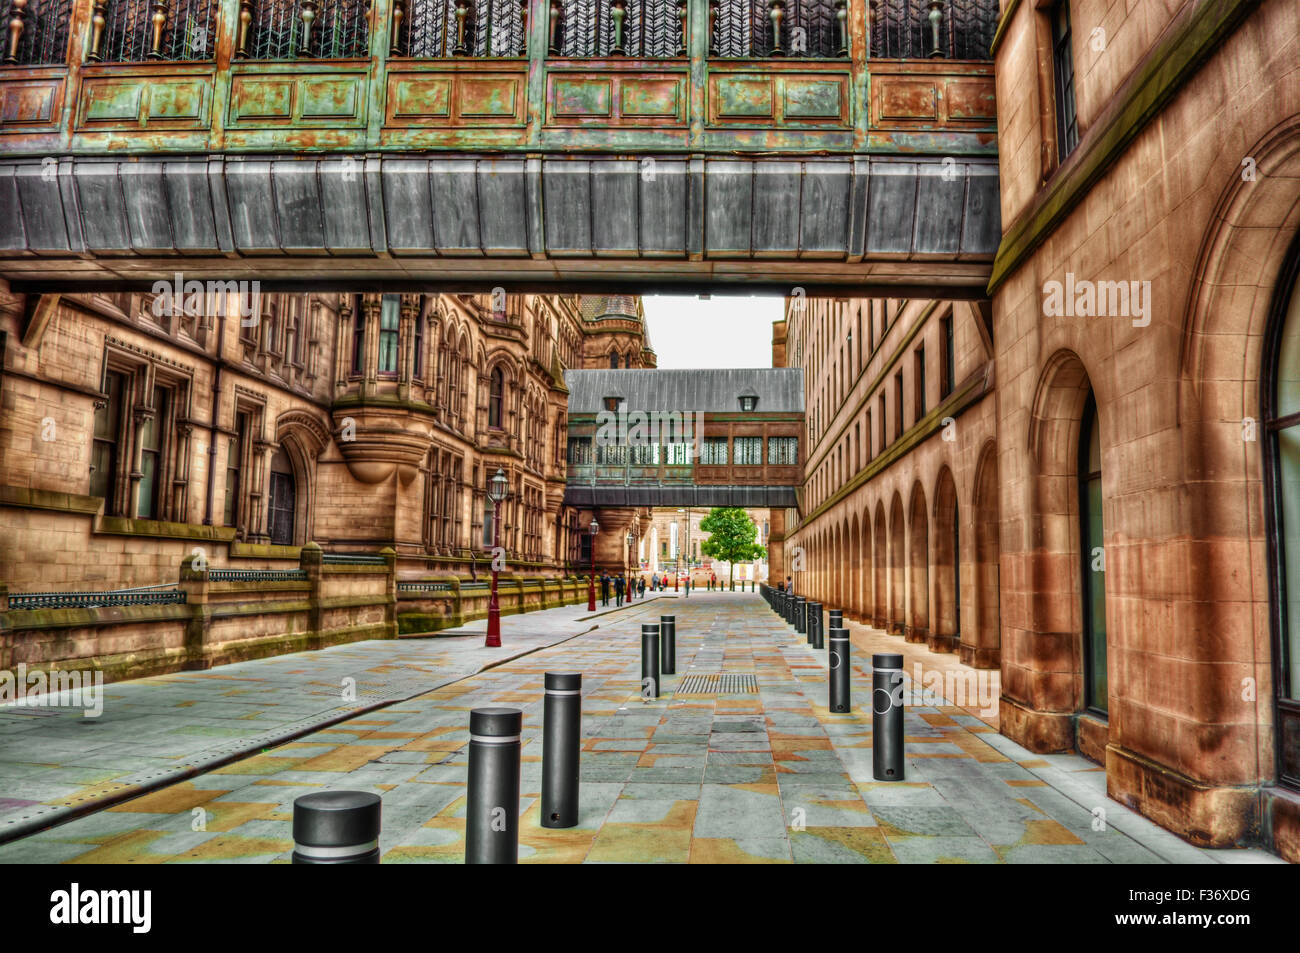 September 2015, passages in Manchester (England), City Council Manchester, HDR-technique - Stock Image